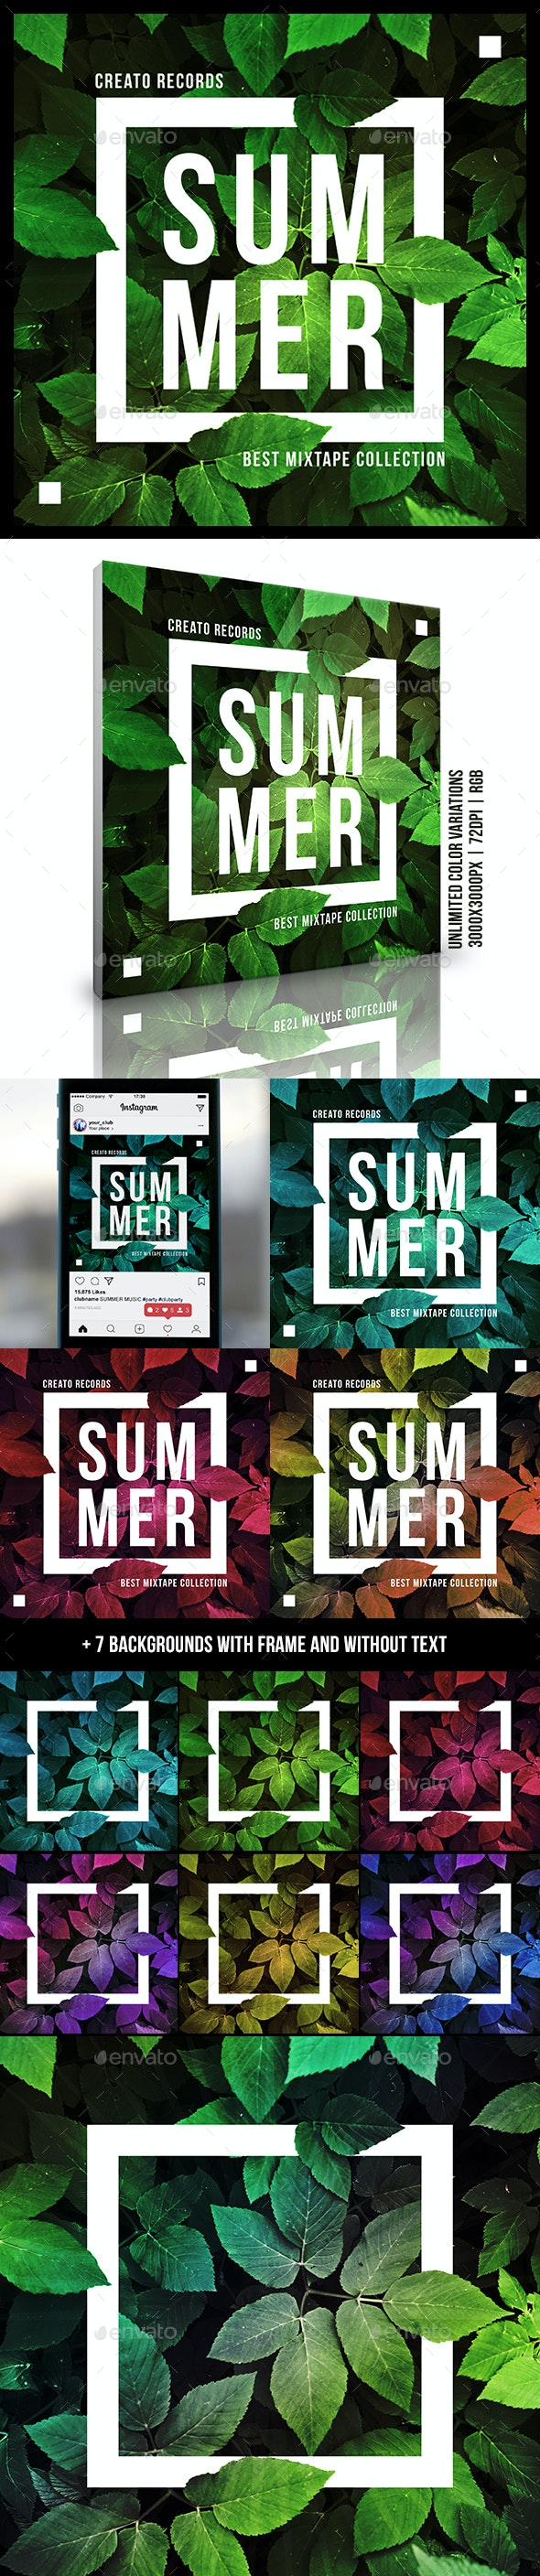 Summer Music Album Cover Artwork Template - Miscellaneous Social Media